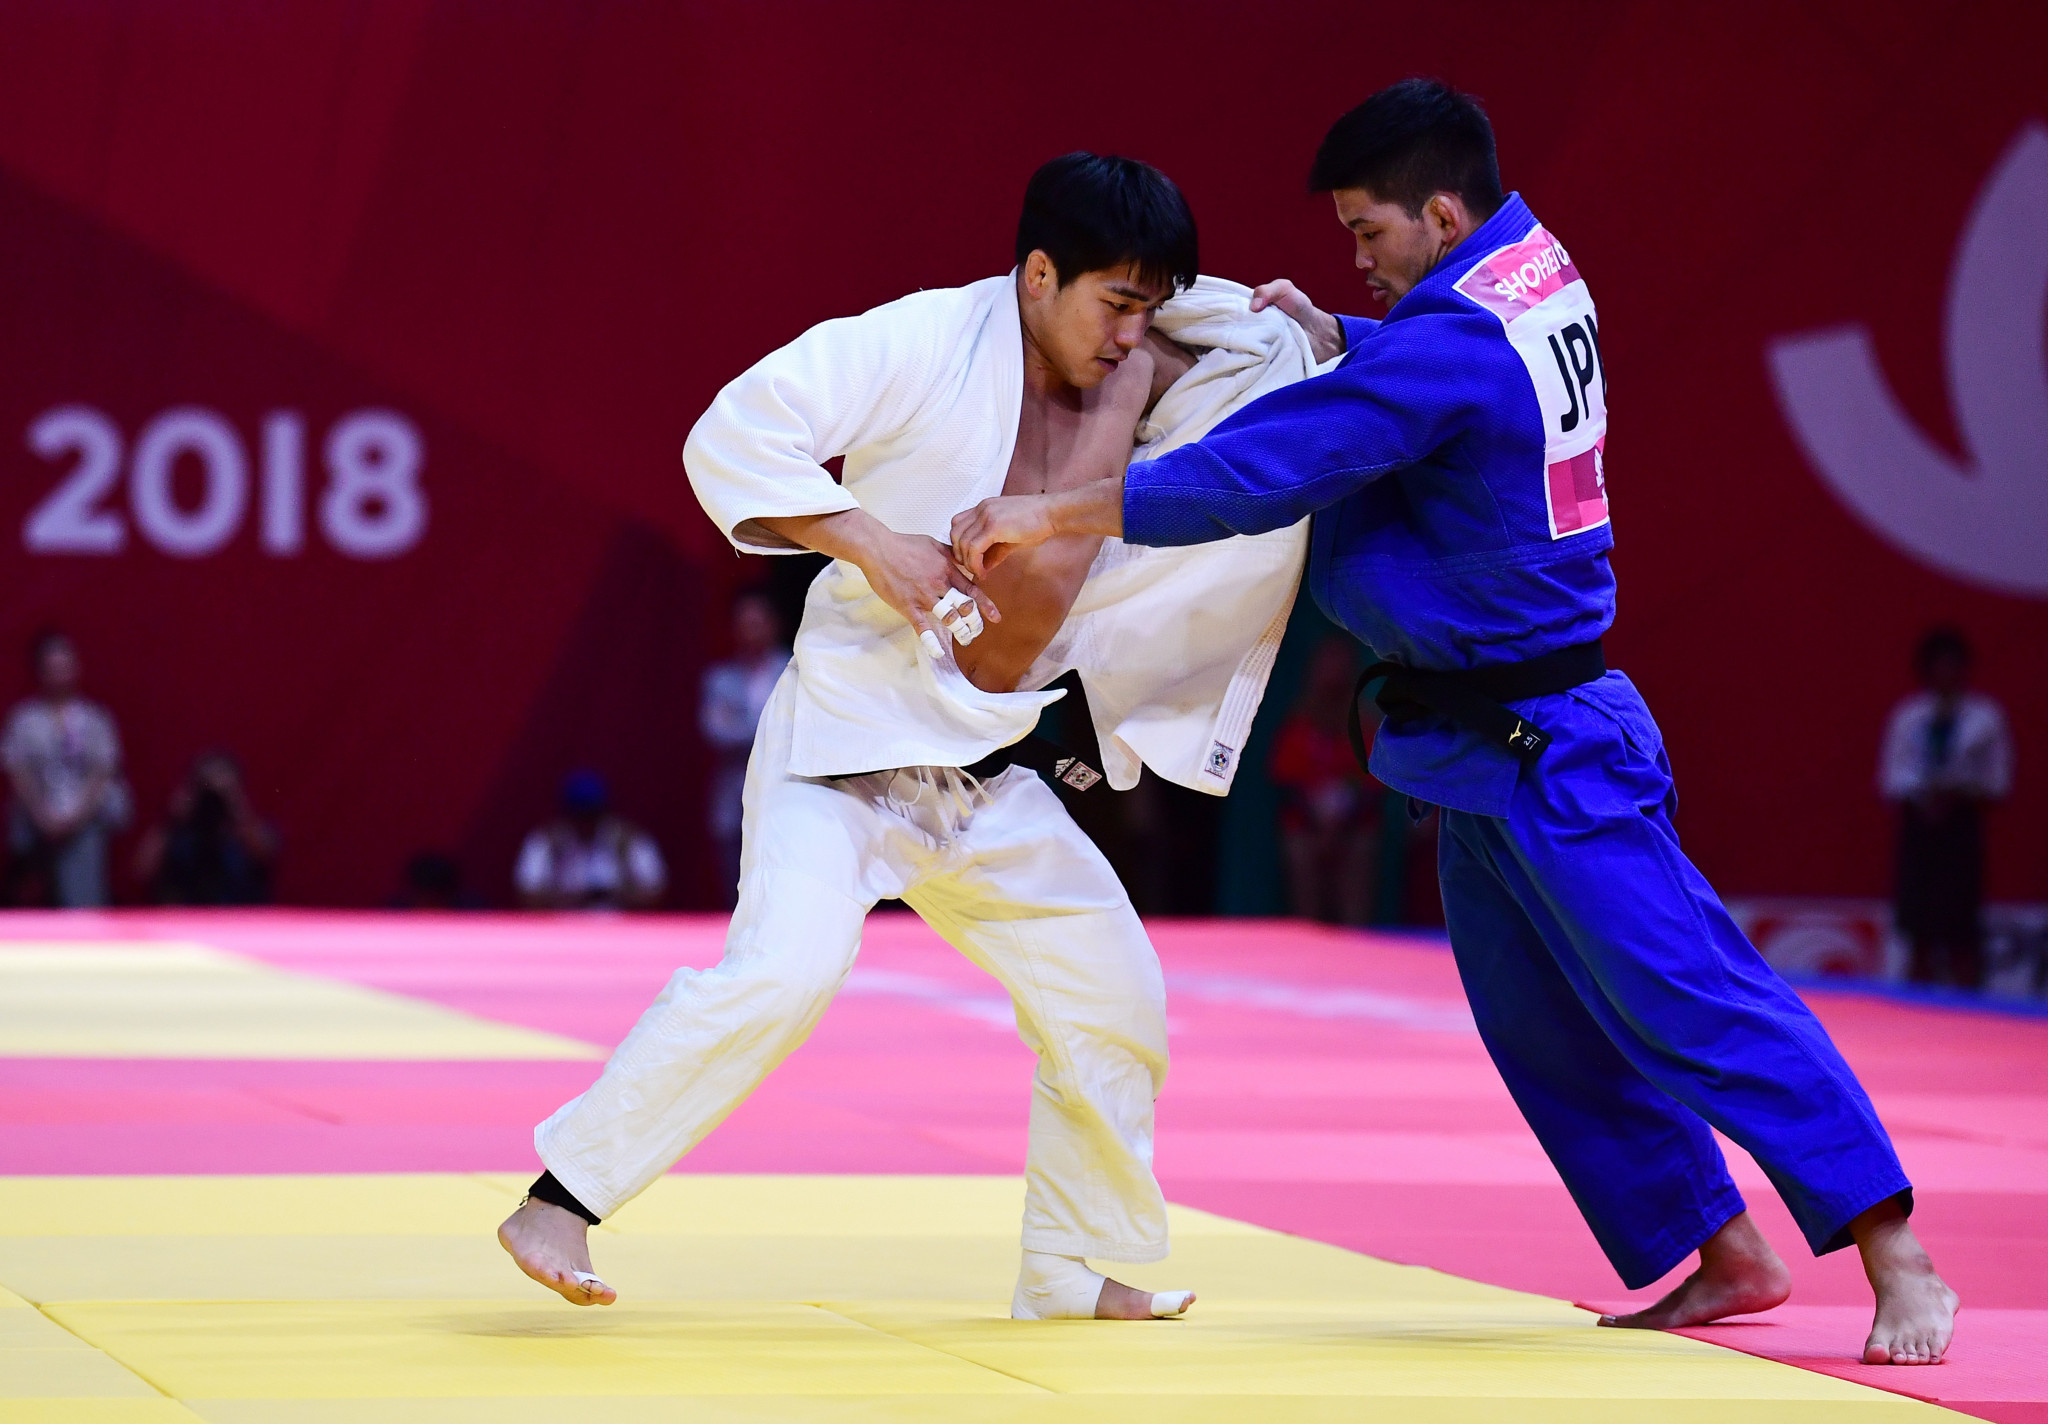 Olympic champion Shohei Ono beat South Korea's An Changrim in the men's under-73 kilograms final, securing Japan's second triumph of the day ©Getty Images